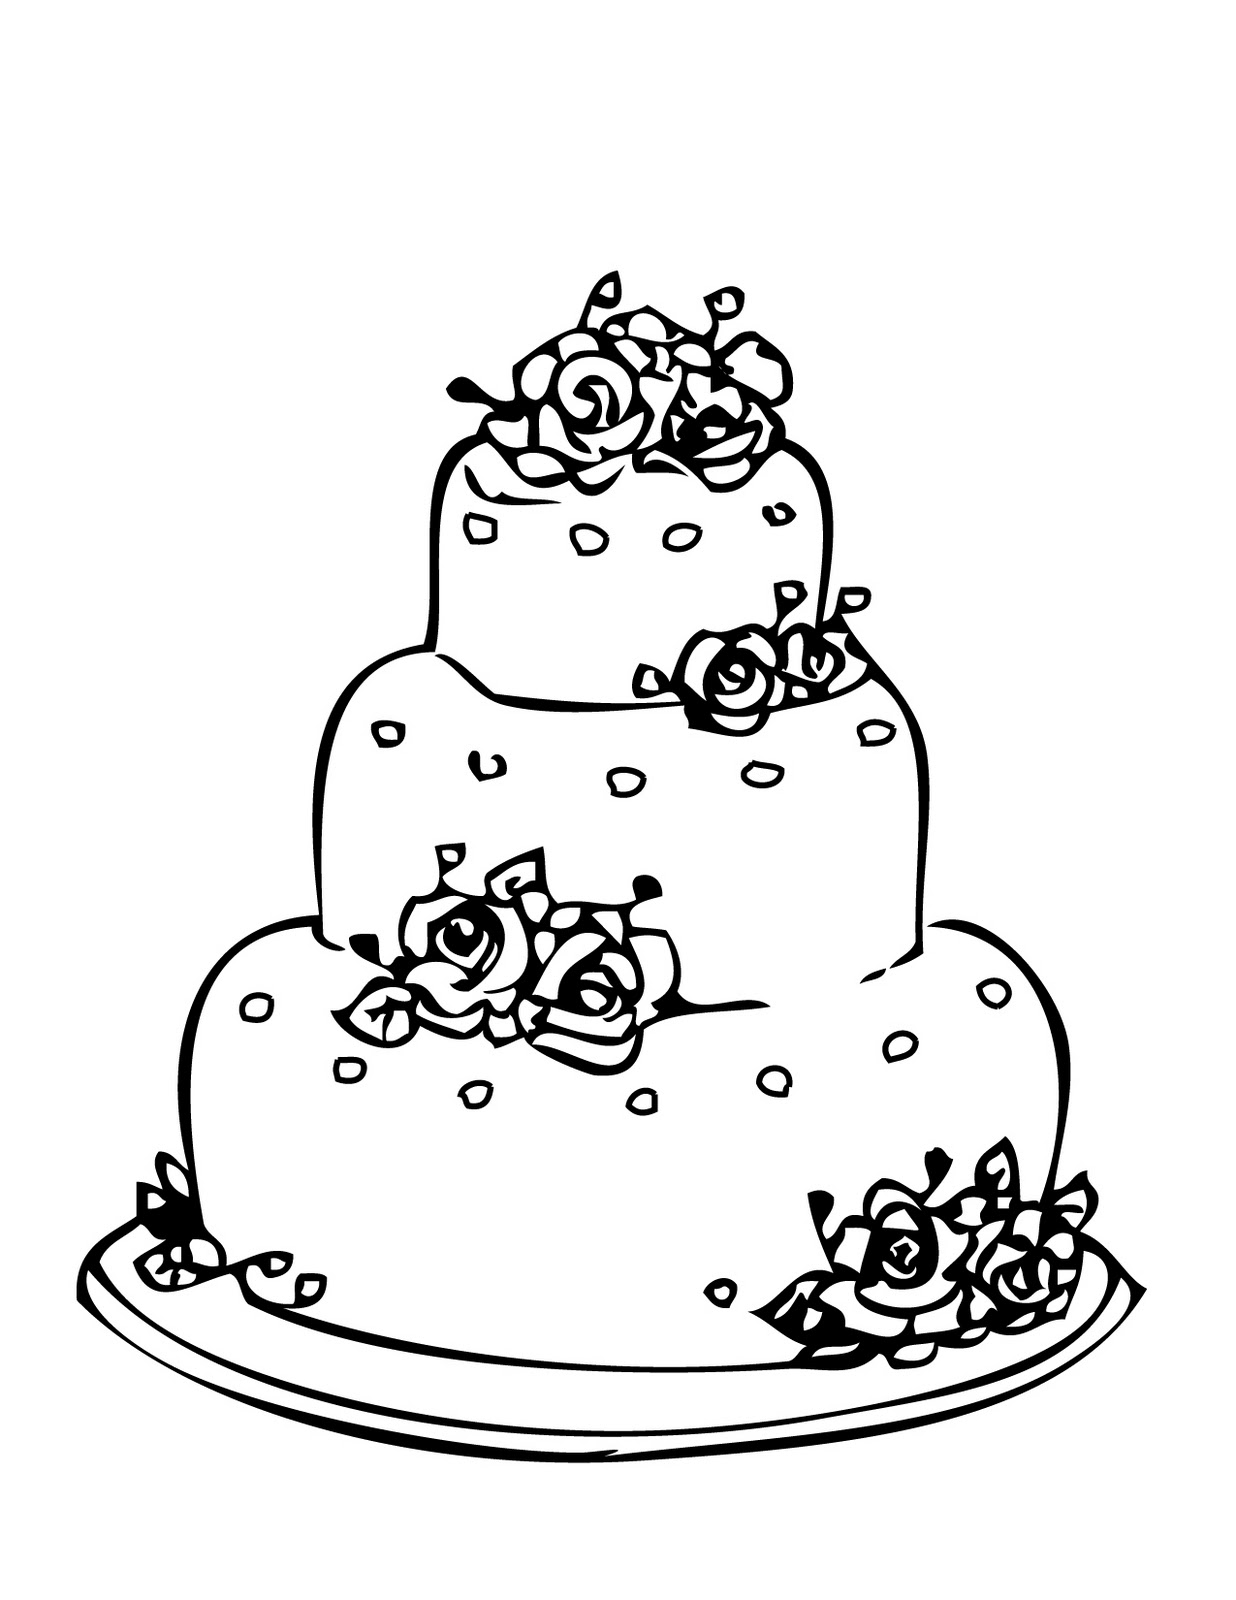 cake coloring pages to print round wedding cake coloring pages to printing coloring to print cake pages